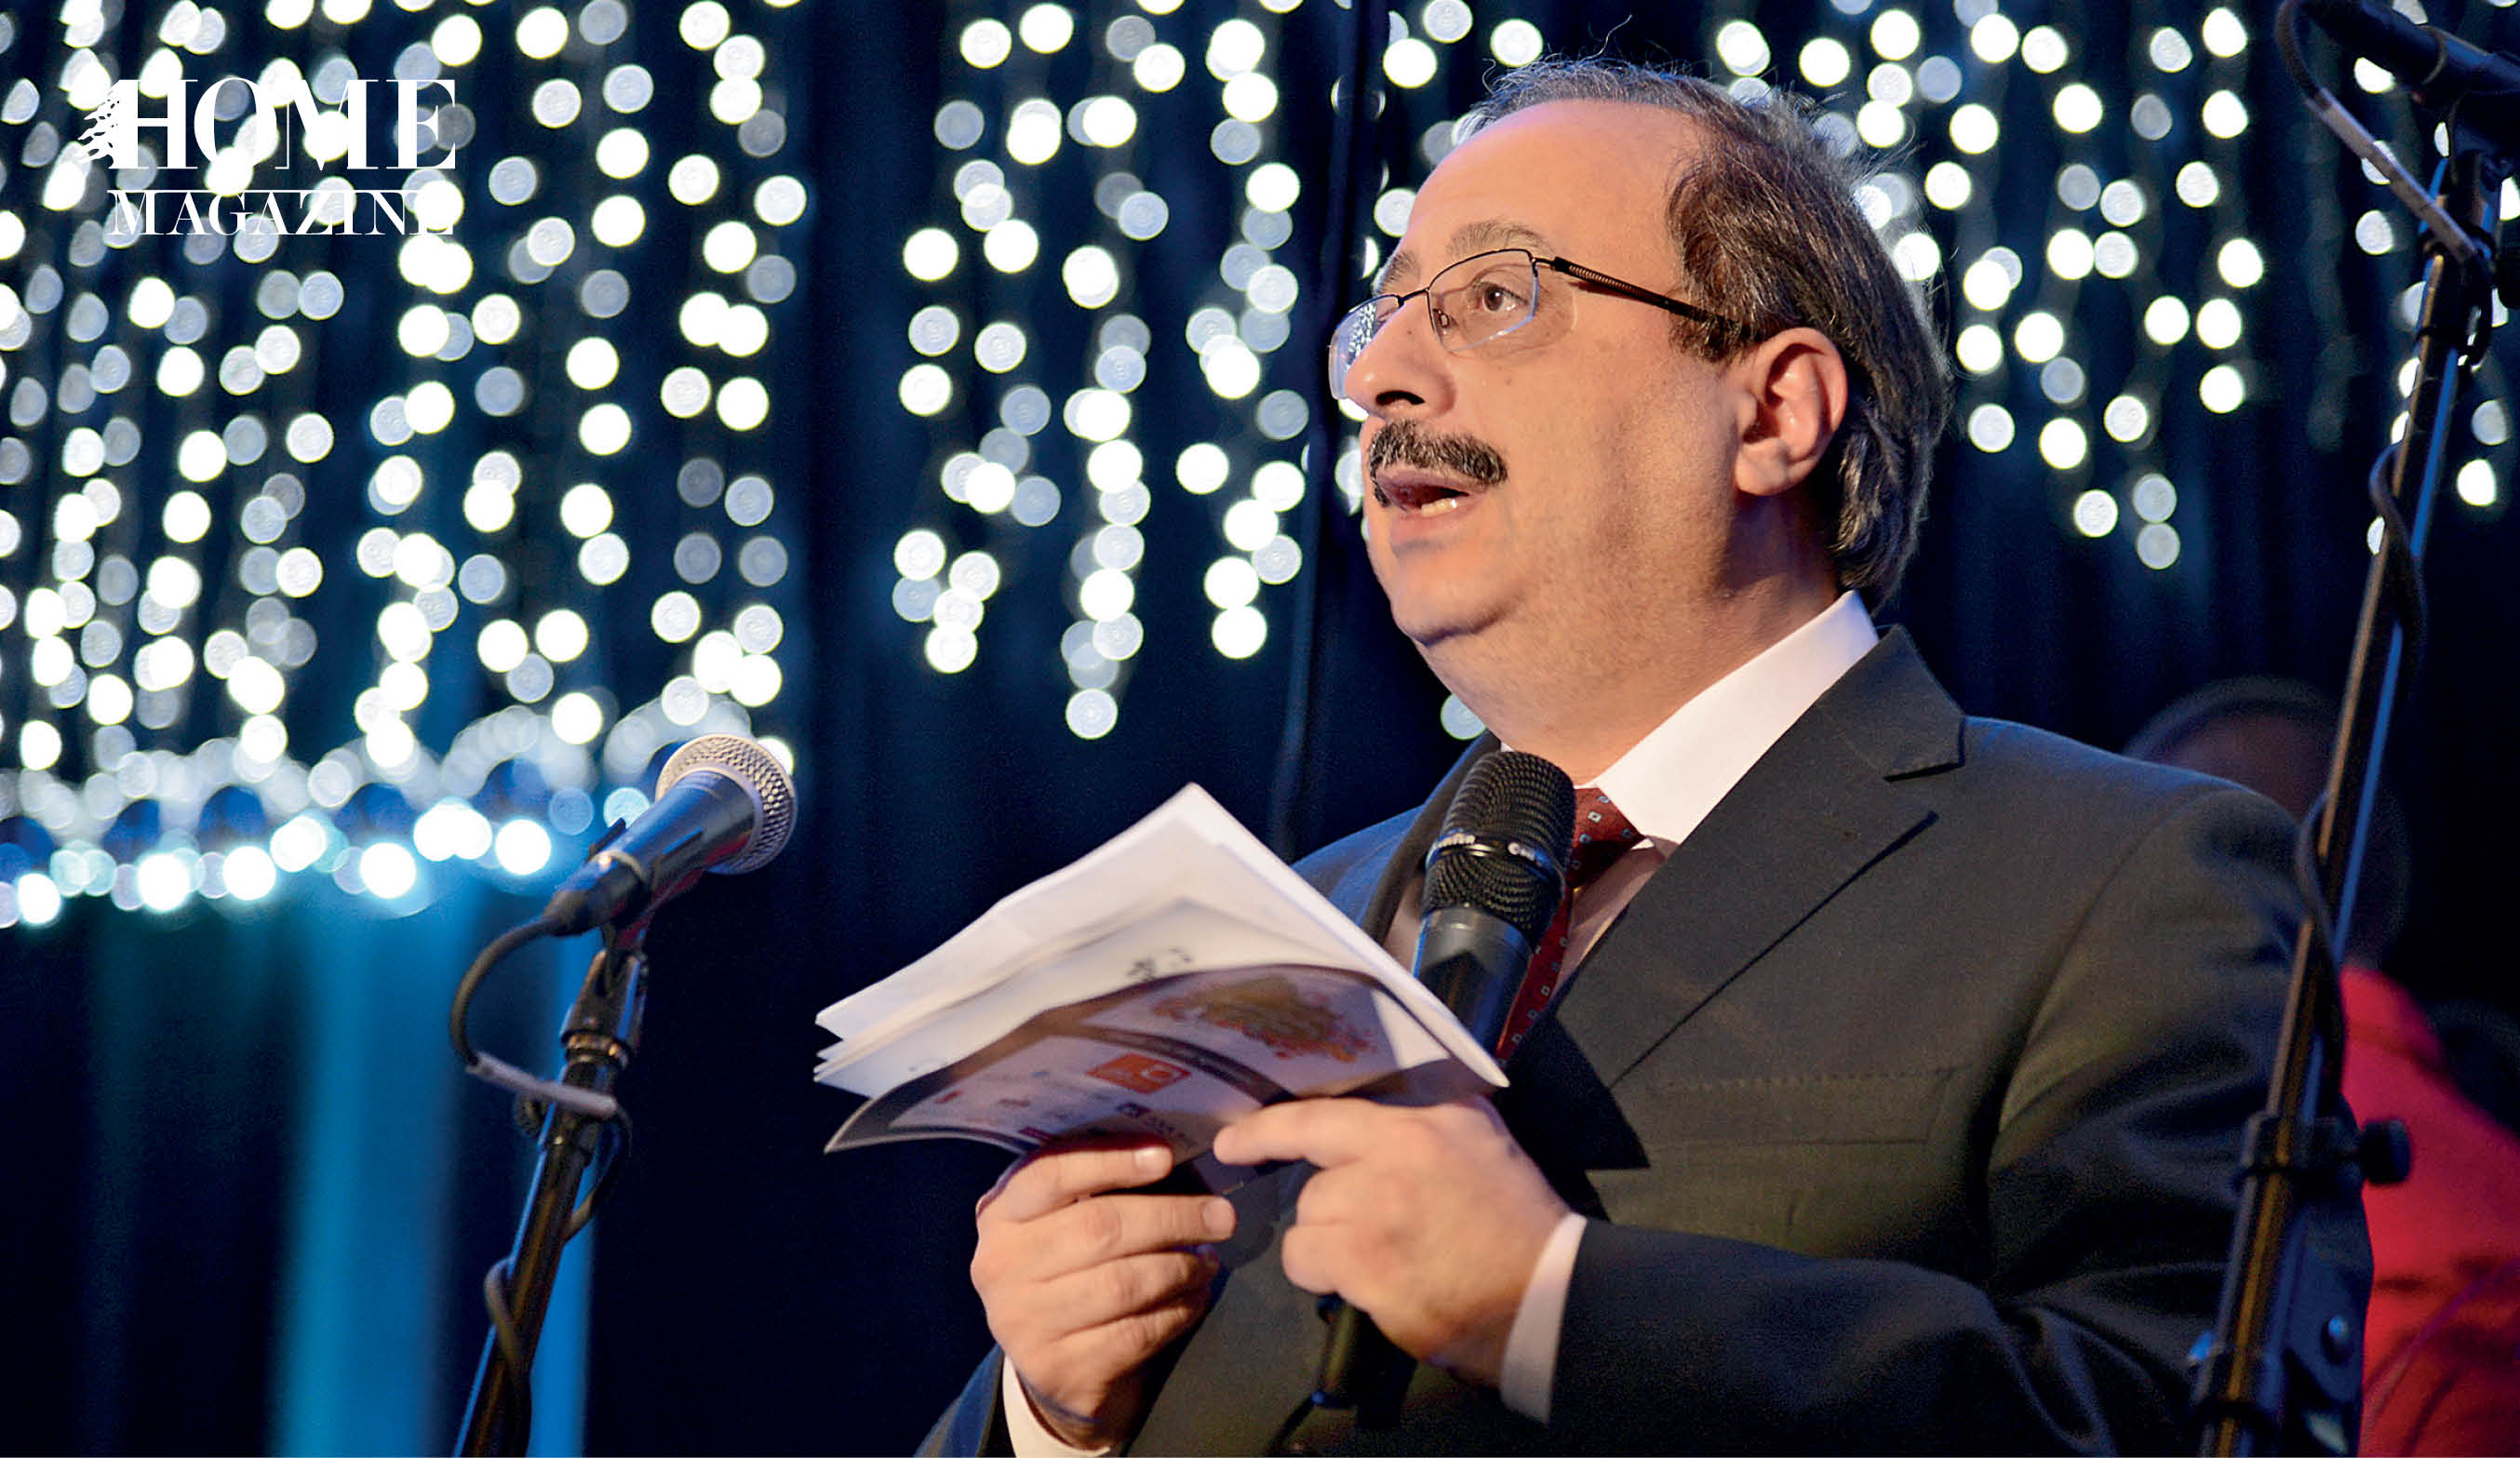 Bald man wearing eyeglasses speaking on a microphone with a notebook in his hands